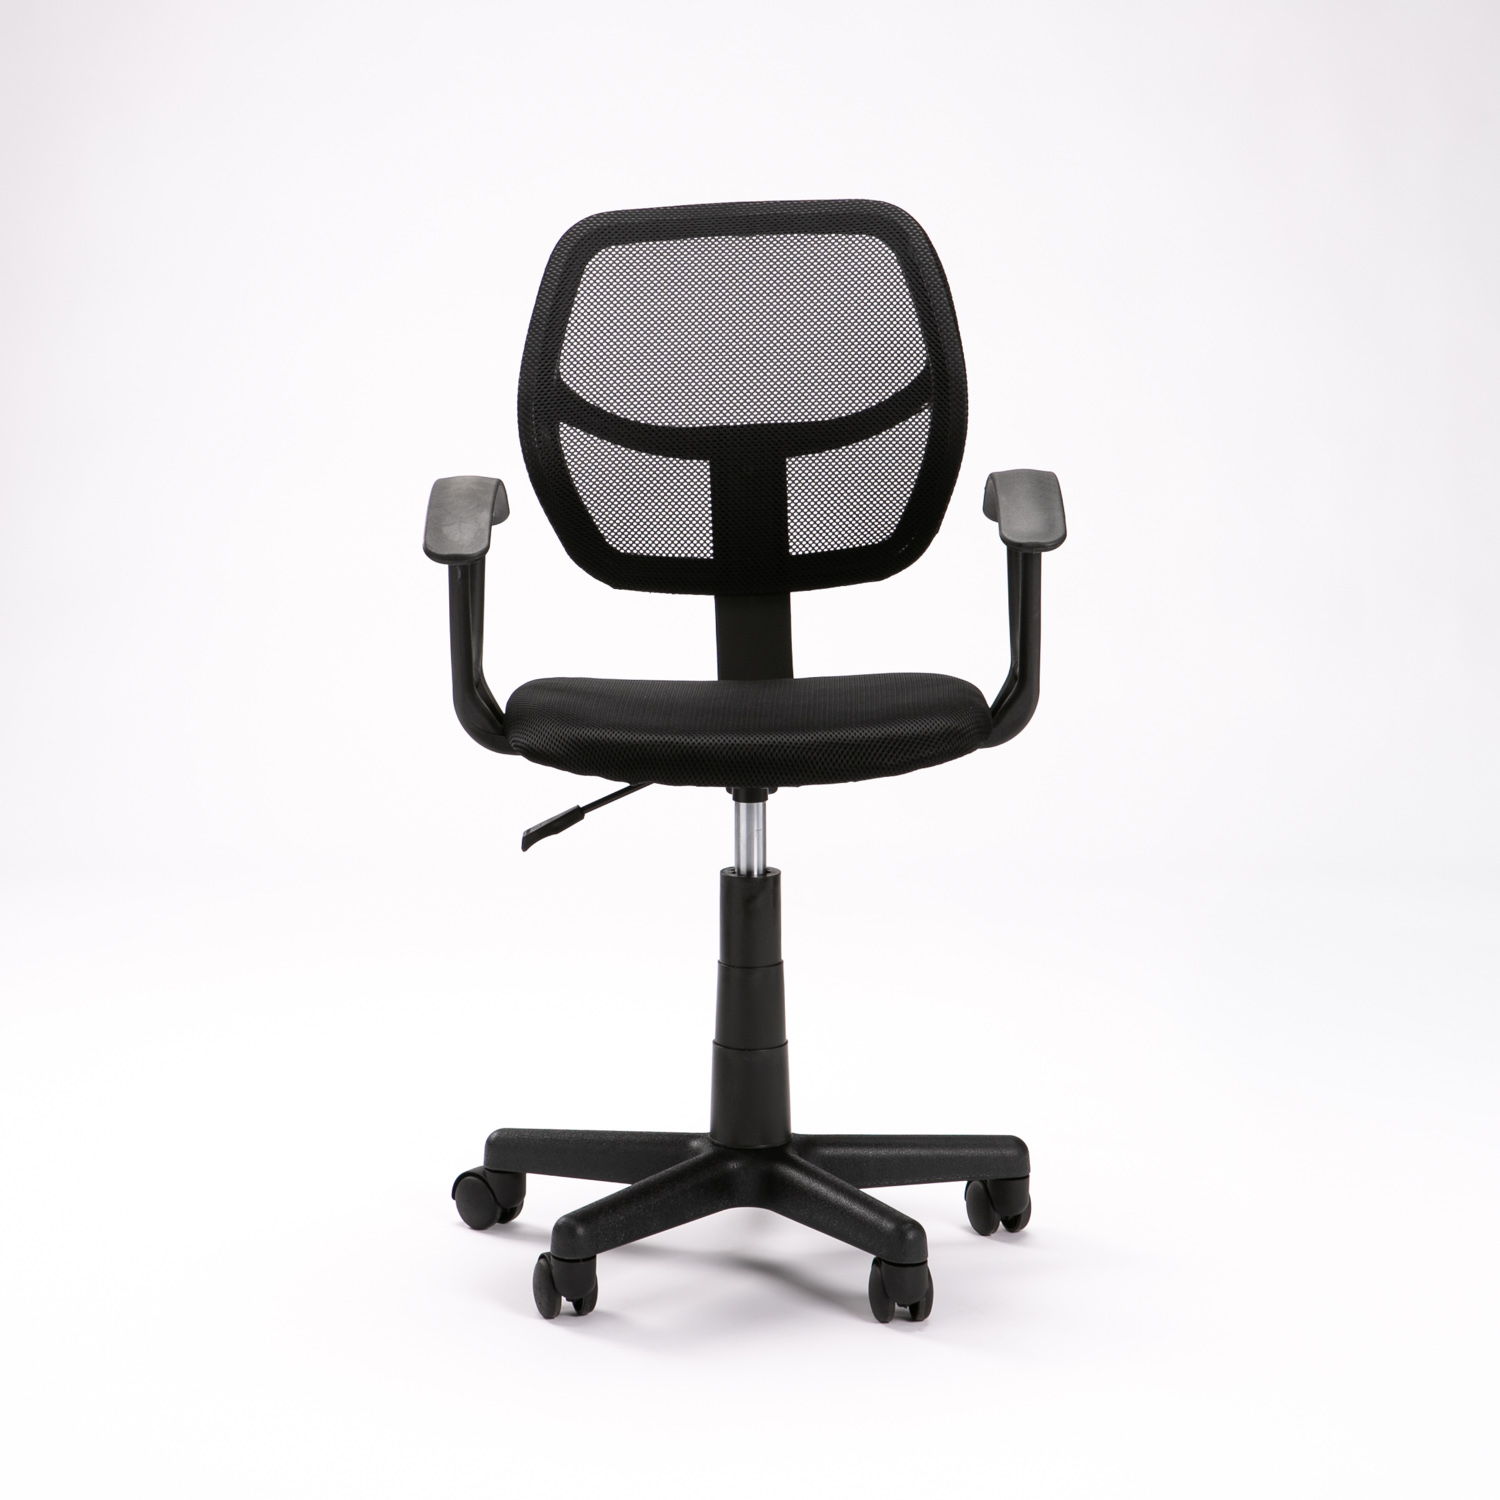 Decofurn Furniture Office Chair Of556 With Arms